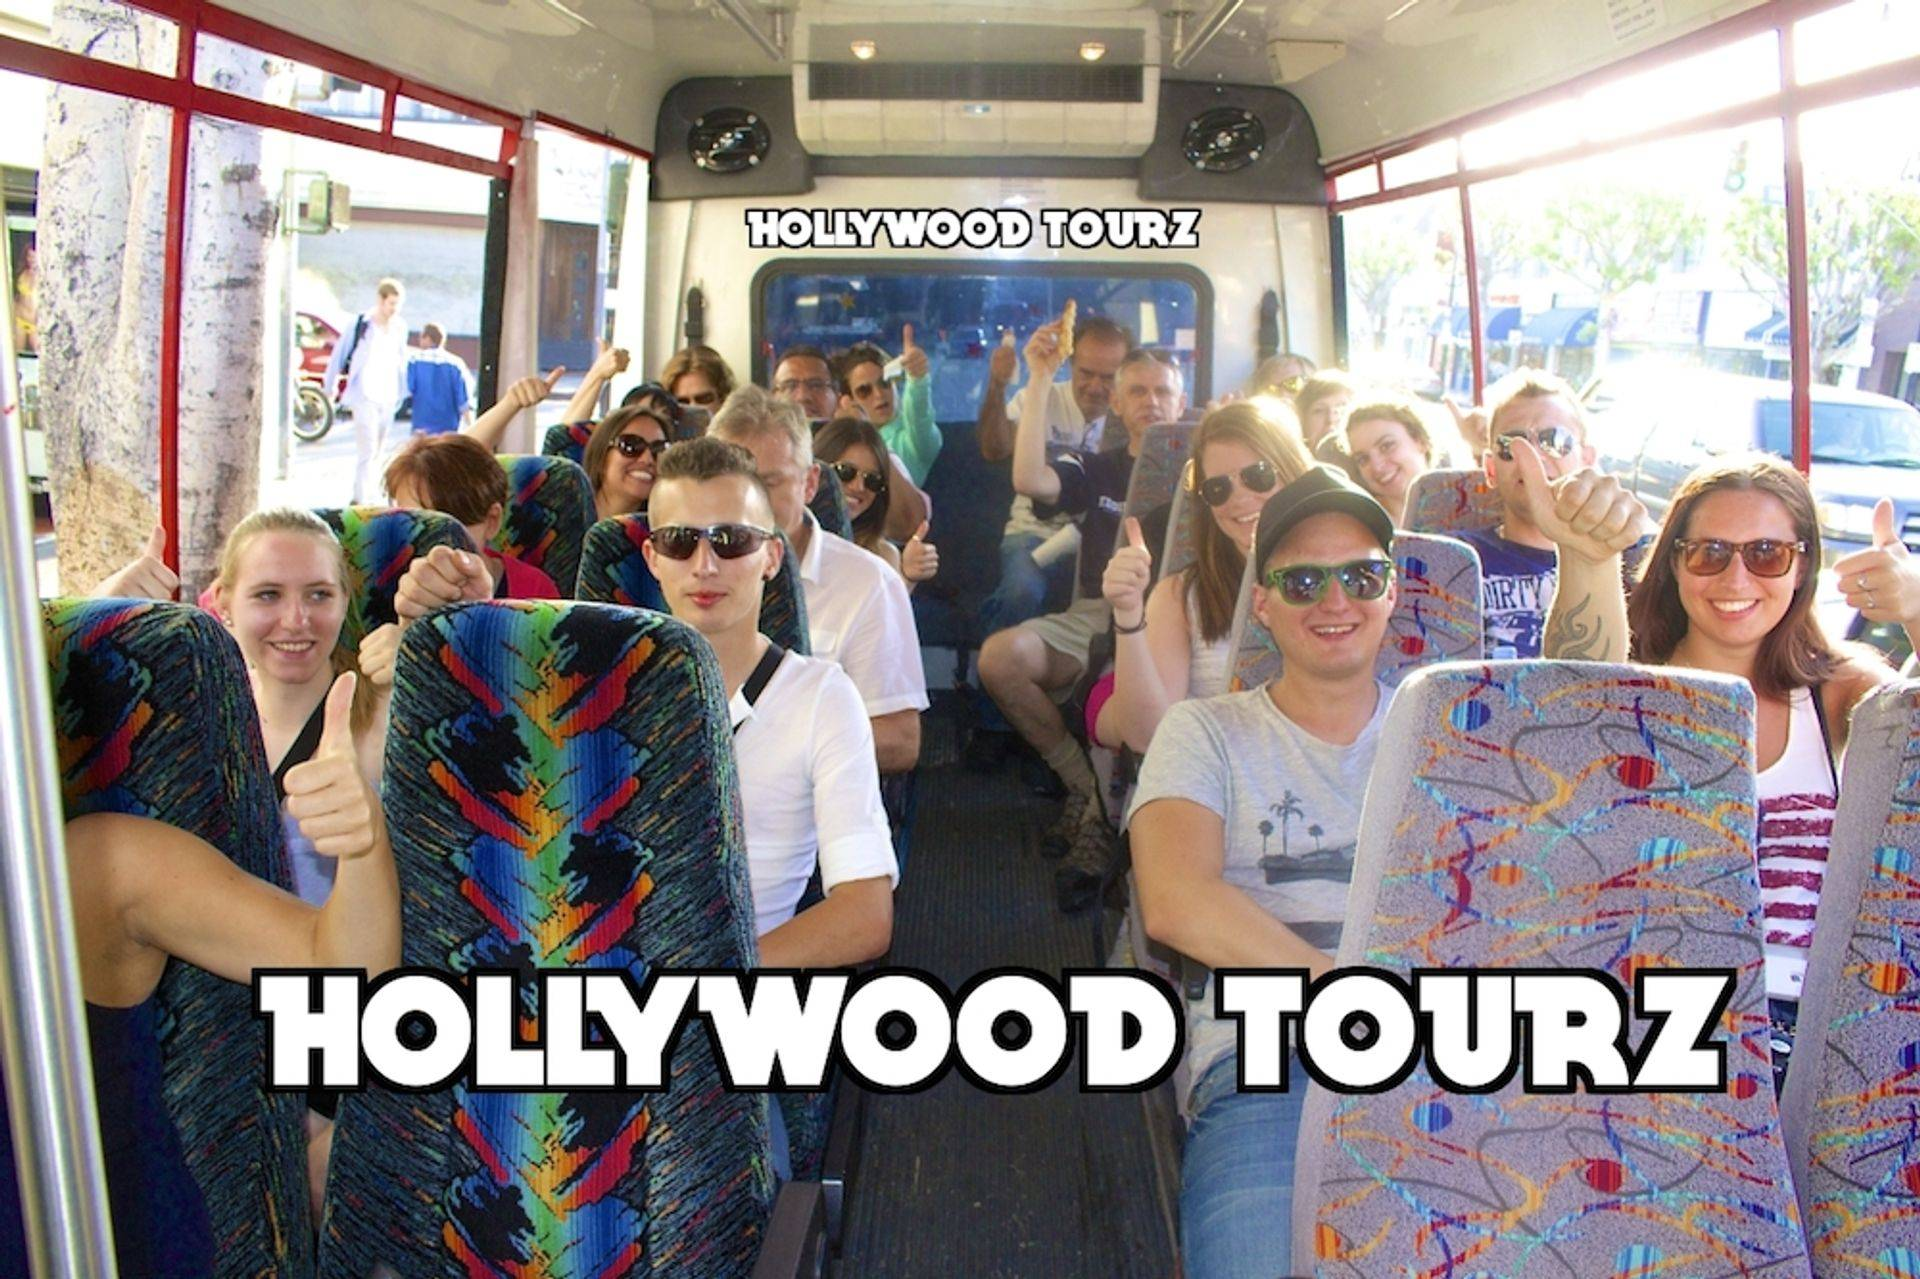 Hollywood Open Bus Sightseeing Tour of Los Angeles California